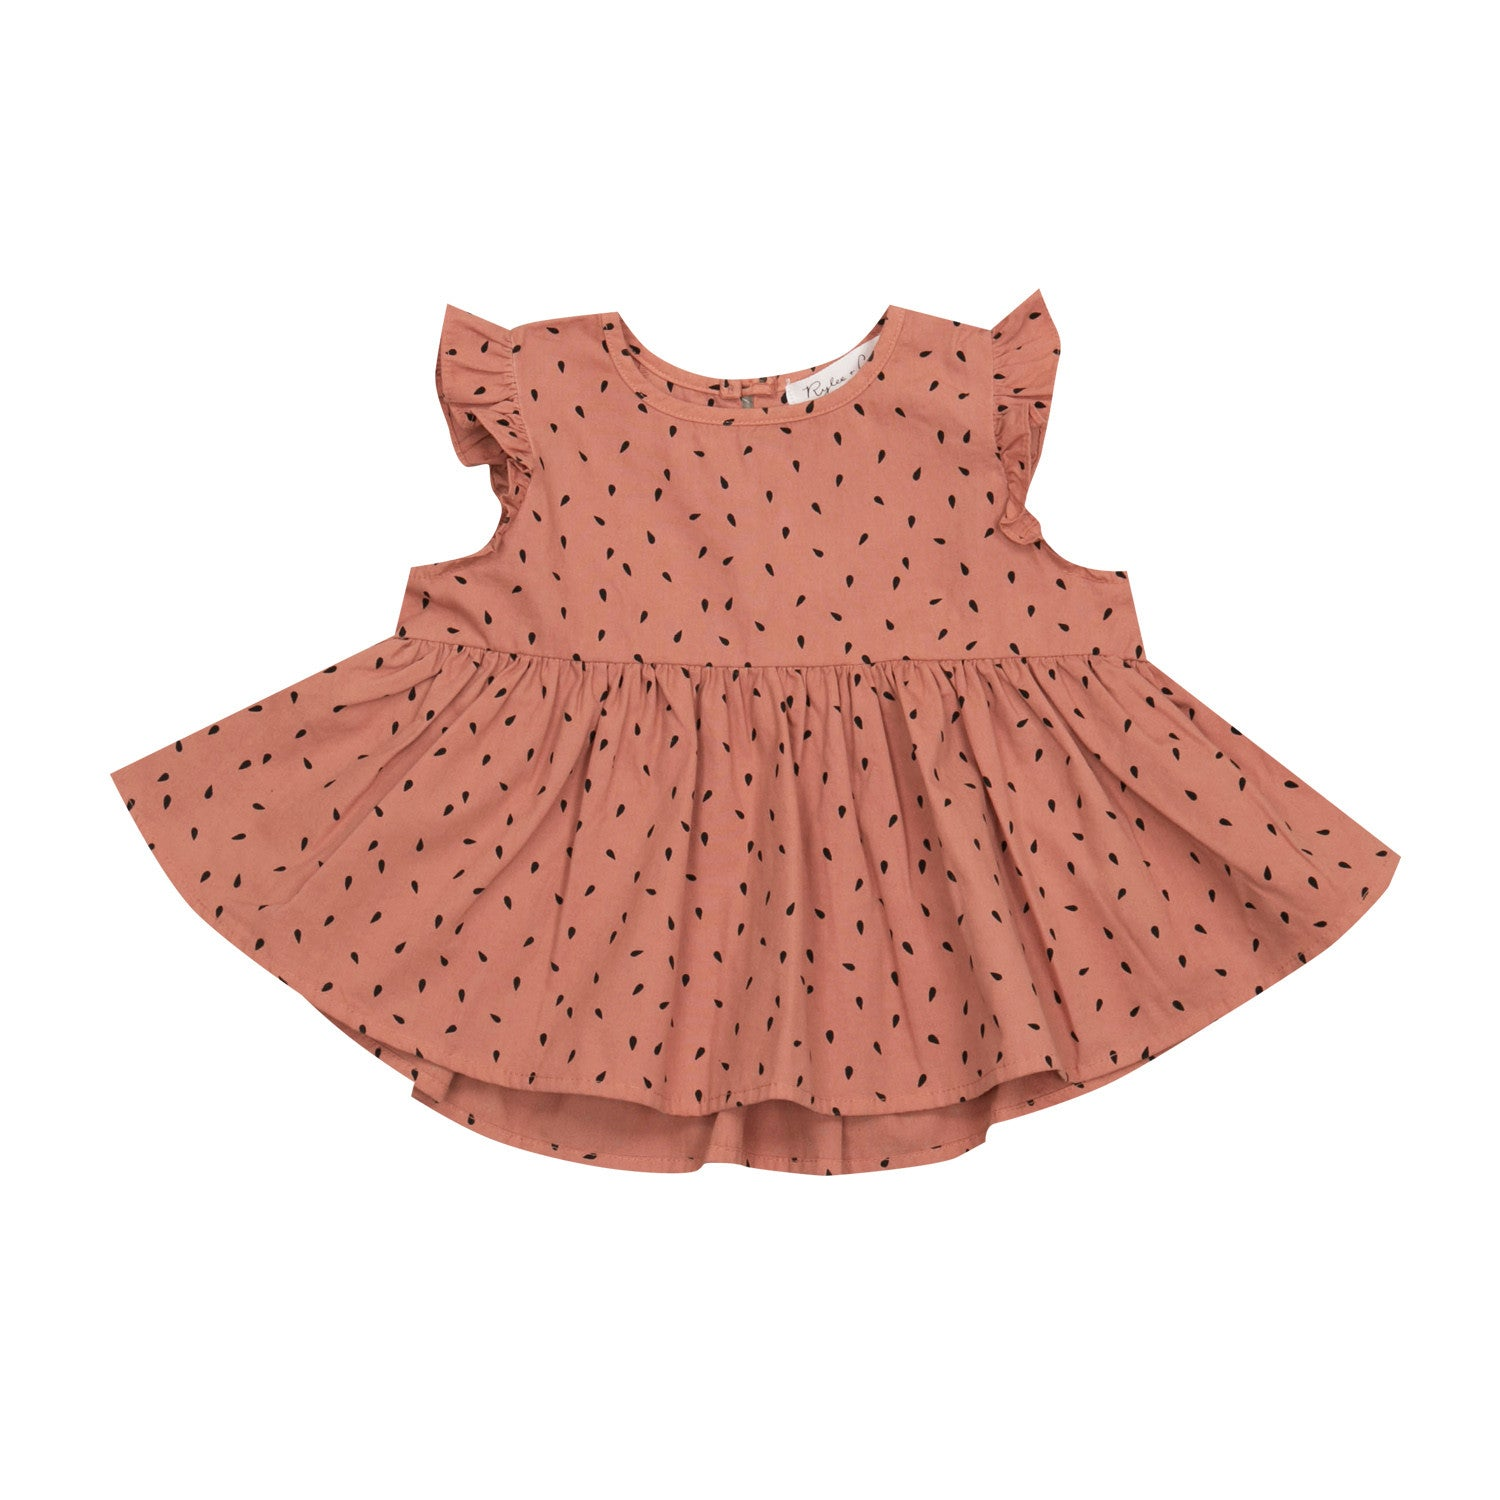 Apple Seed dress and bloomer set